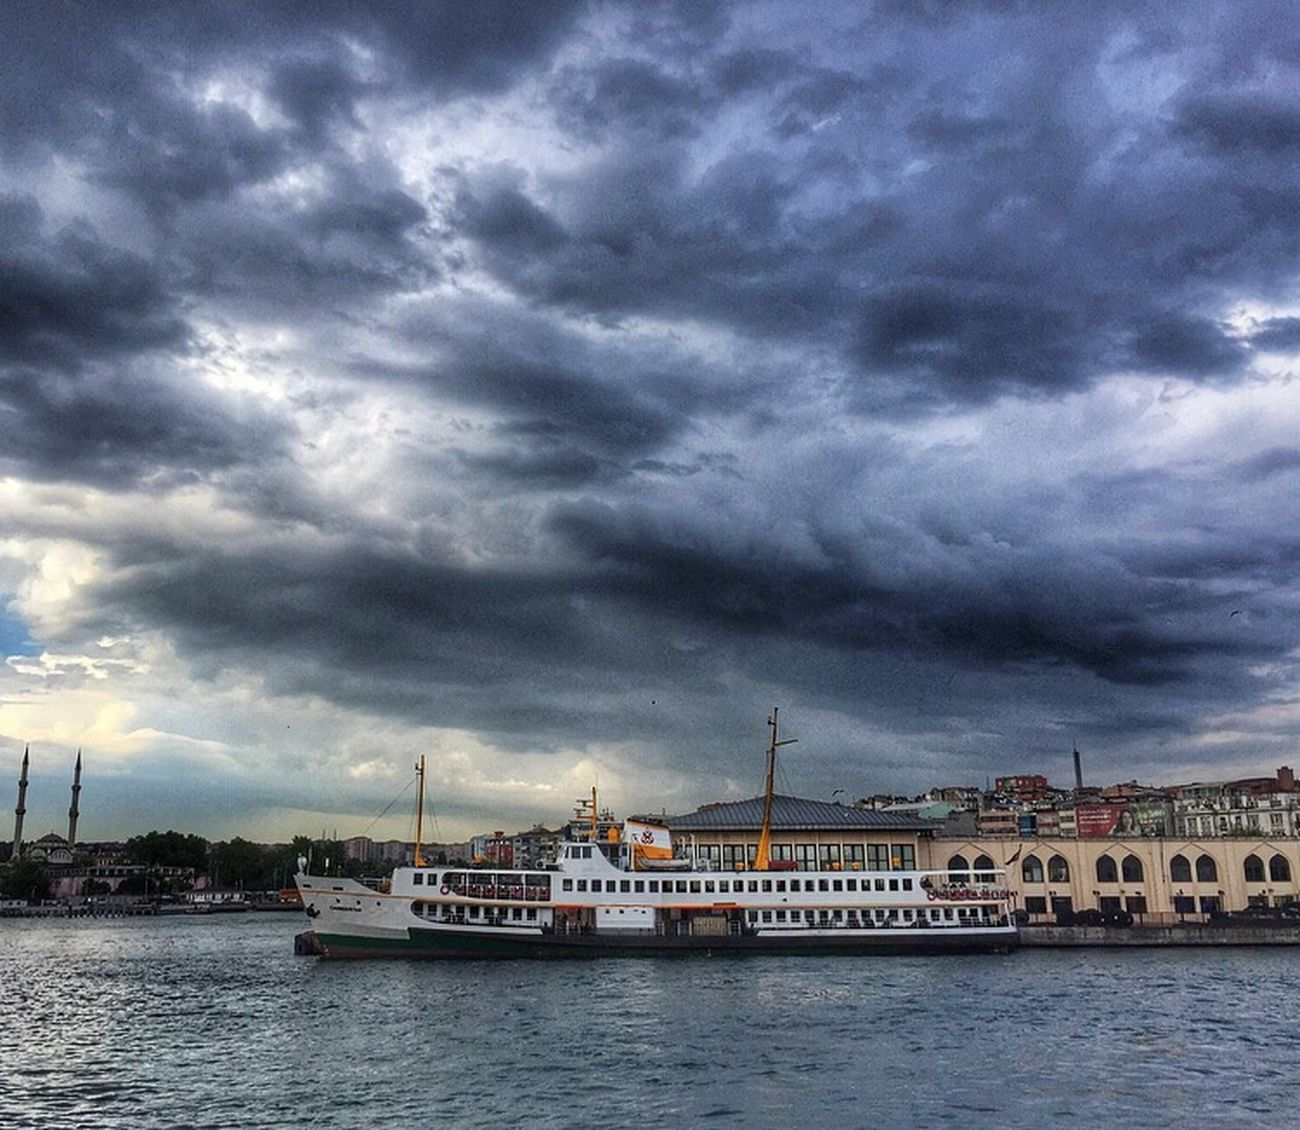 Cloud - Sky Nautical Vessel Sky Mode Of Transport Dramatic Sky Transportation Water Built Structure Building Exterior Architecture Storm Cloud Outdoors Nature Waterfront Day Sea Travel Destinations No People Tranquility City